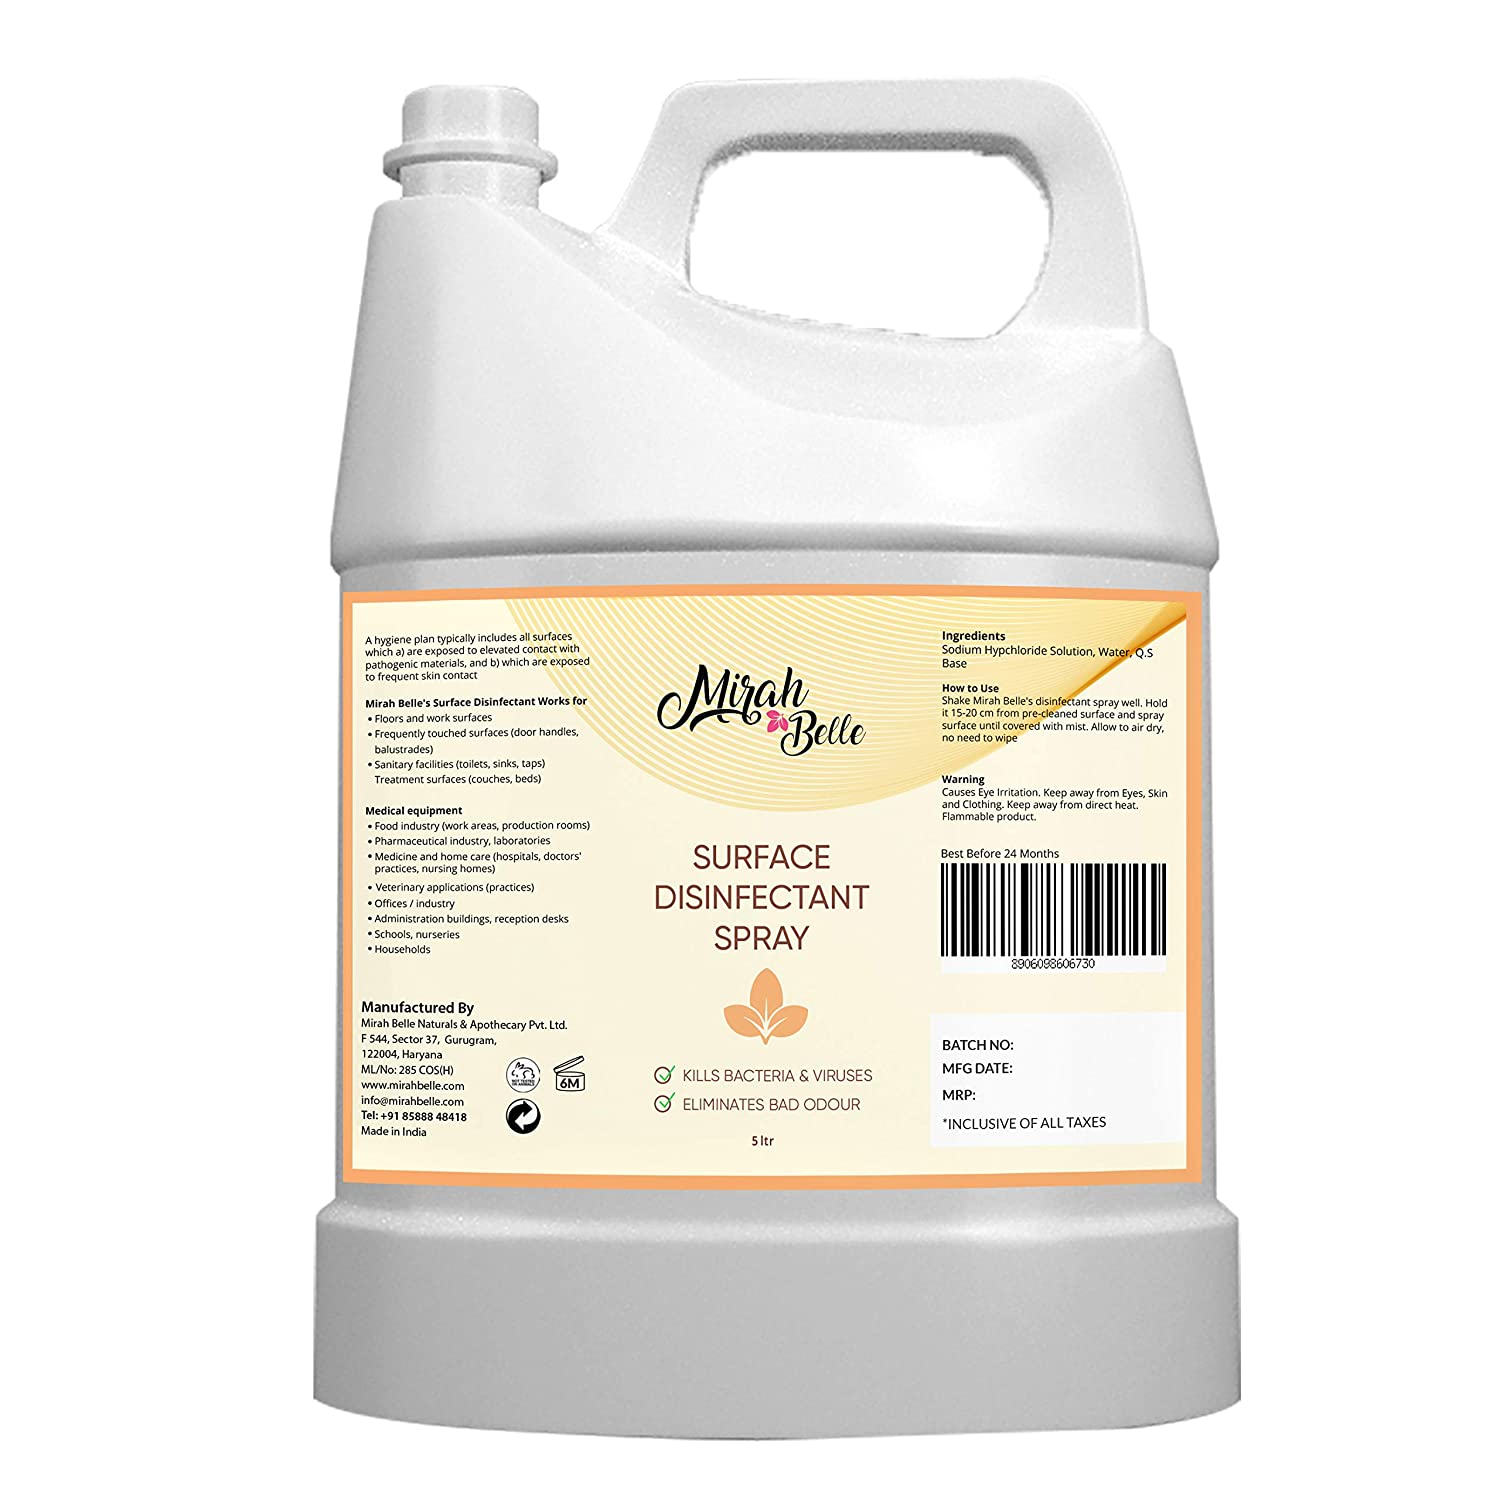 [Apply coupon] Mirah Belle - Surface Disinfectant Can (5 LTRS) - Hard and Soft Surfaces - Advanced Cleaner and Sanitizer - Large Bulk Pack - Best for Home, Offices, Door Handles, Cars and Bathrooms